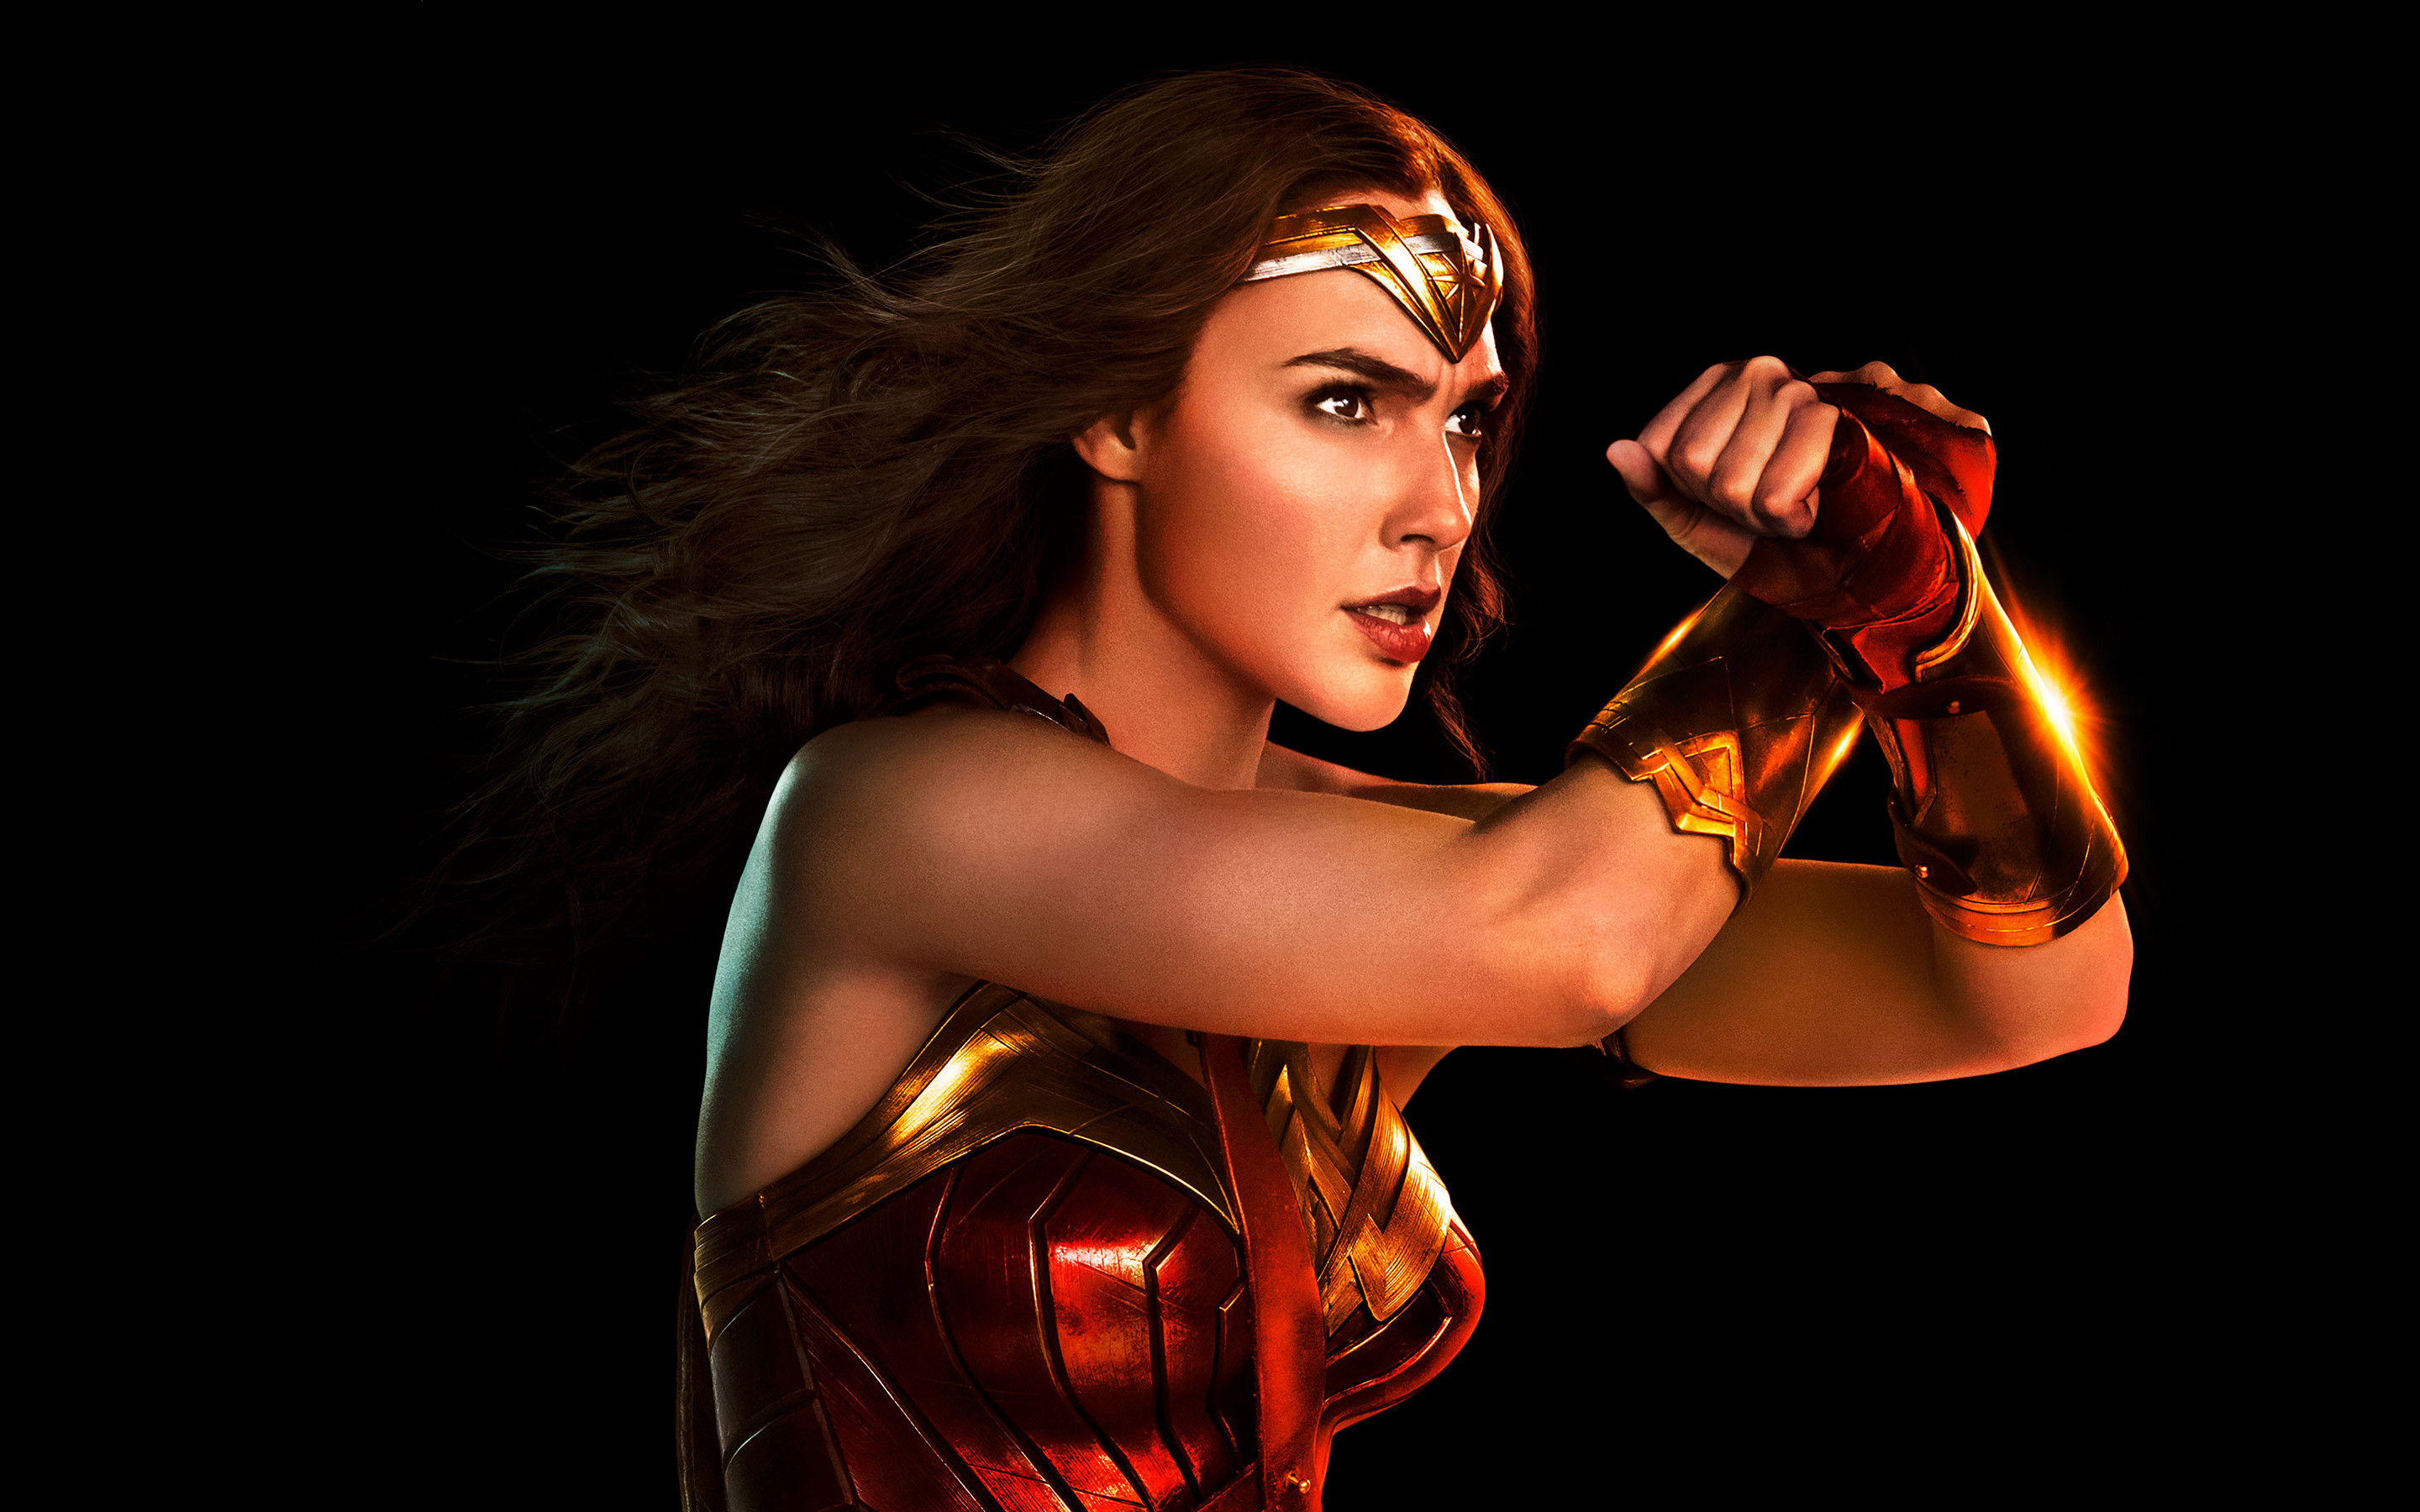 Res: 2880x1800, Tags: Wonder Woman Justice League